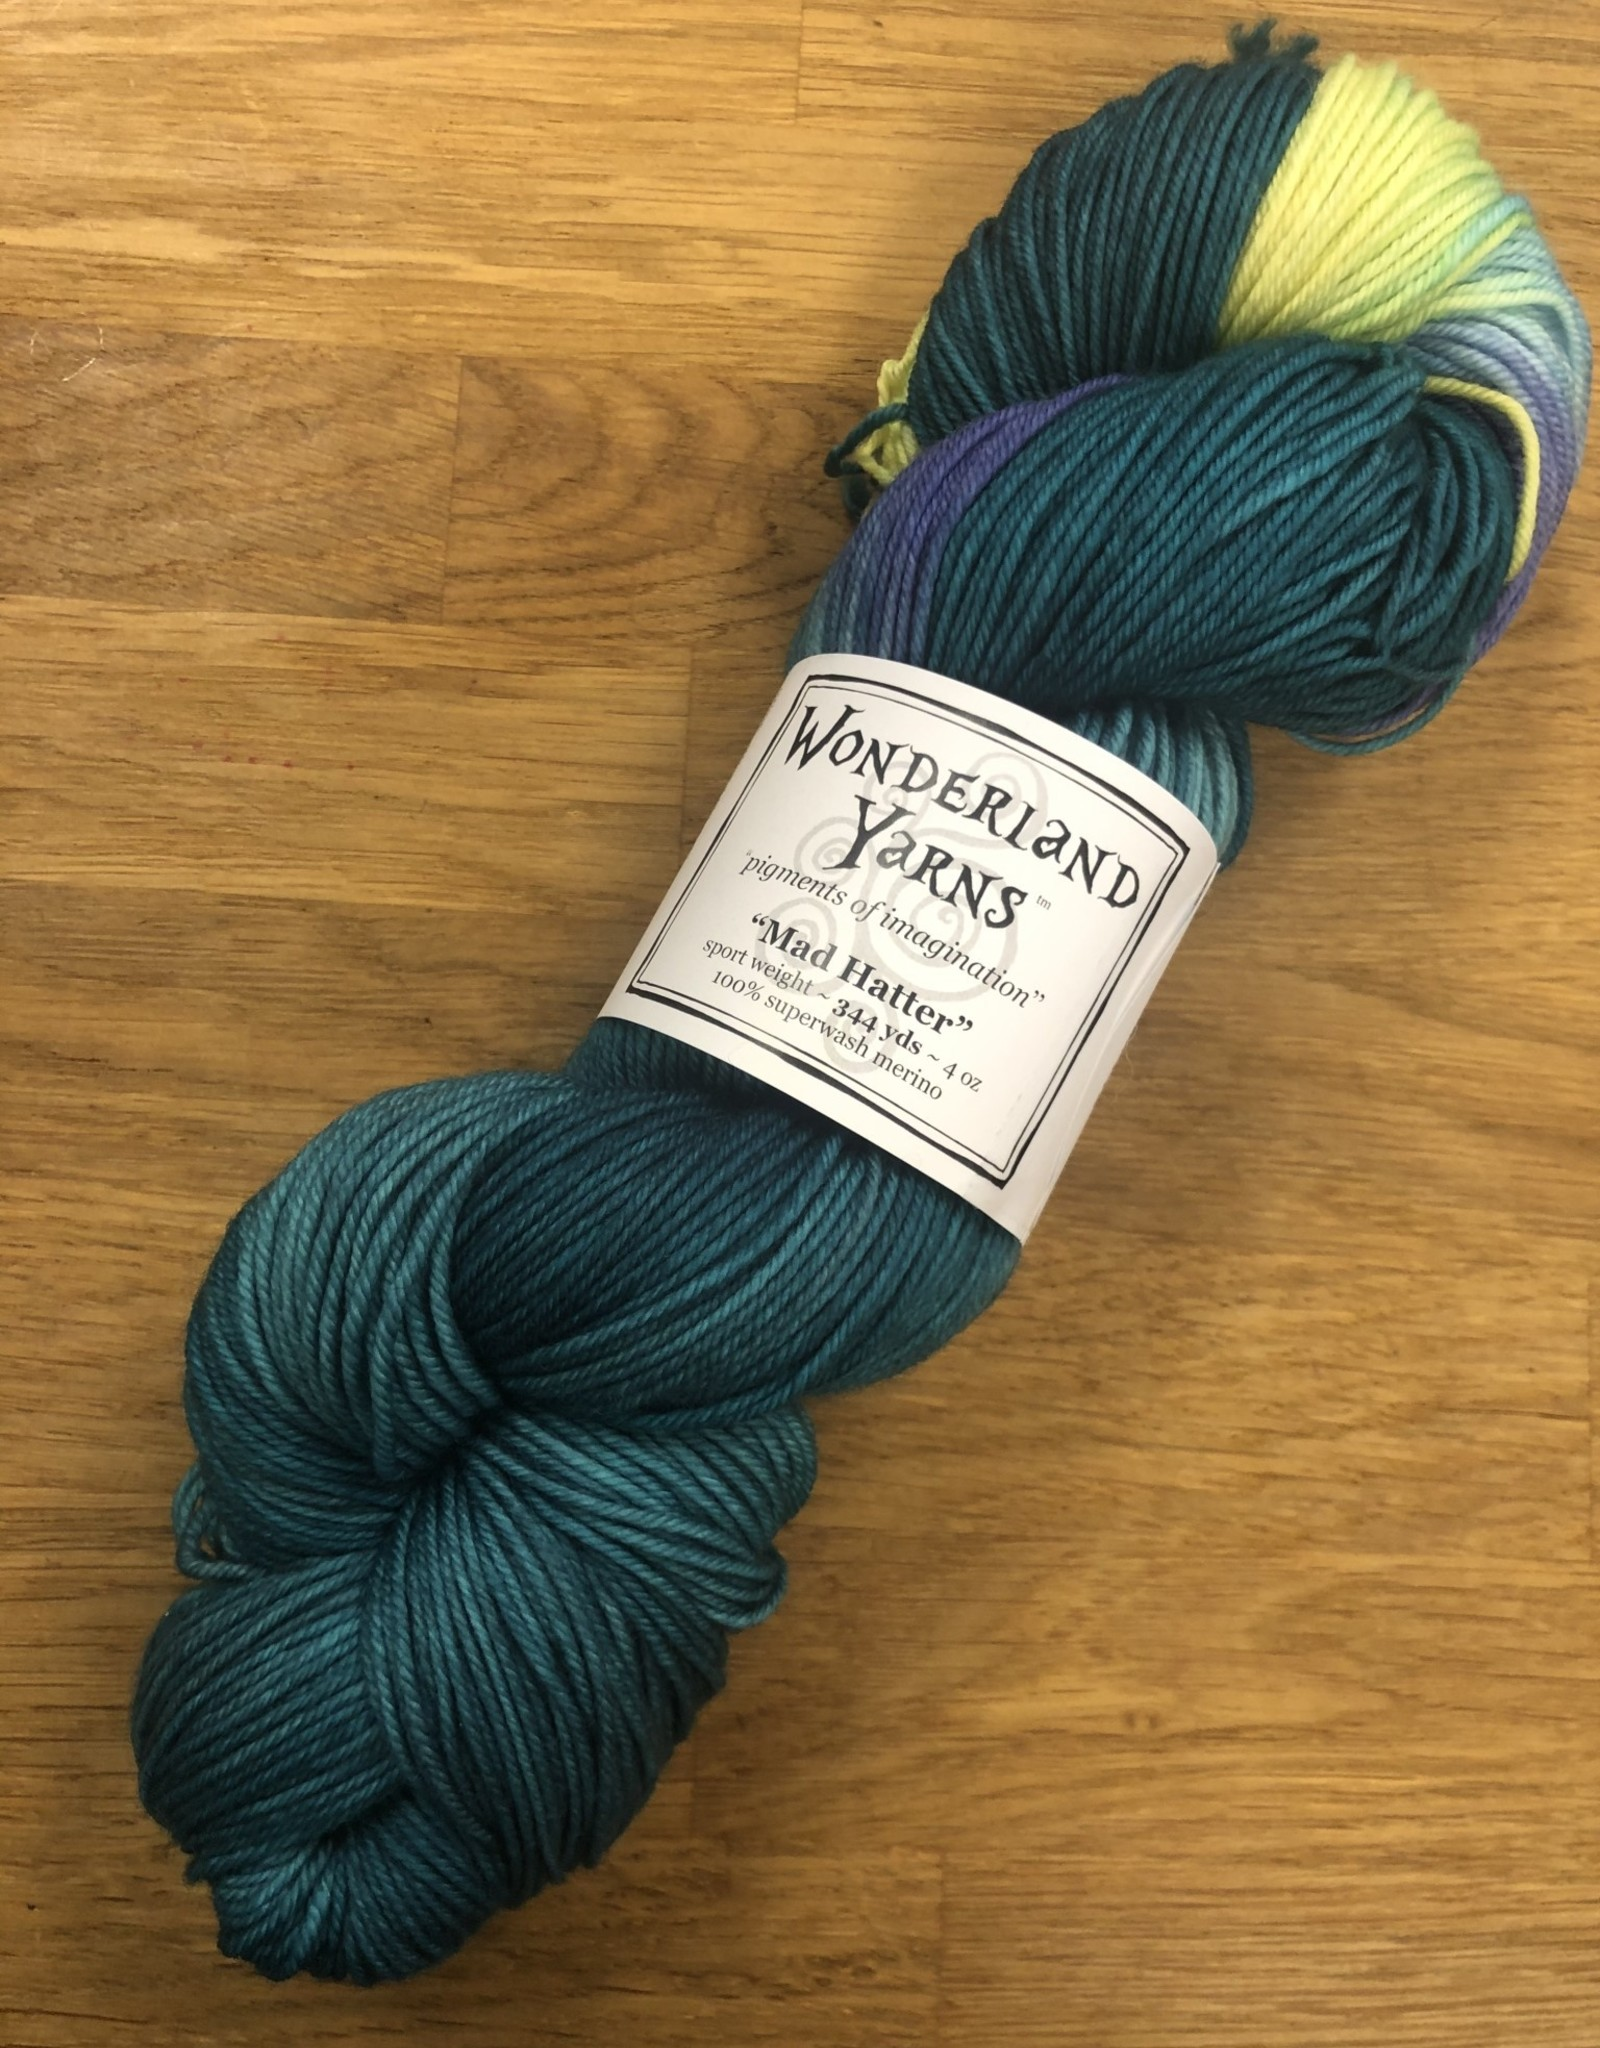 Burst of Inspiration at Your LYS by Wonderland Yarns